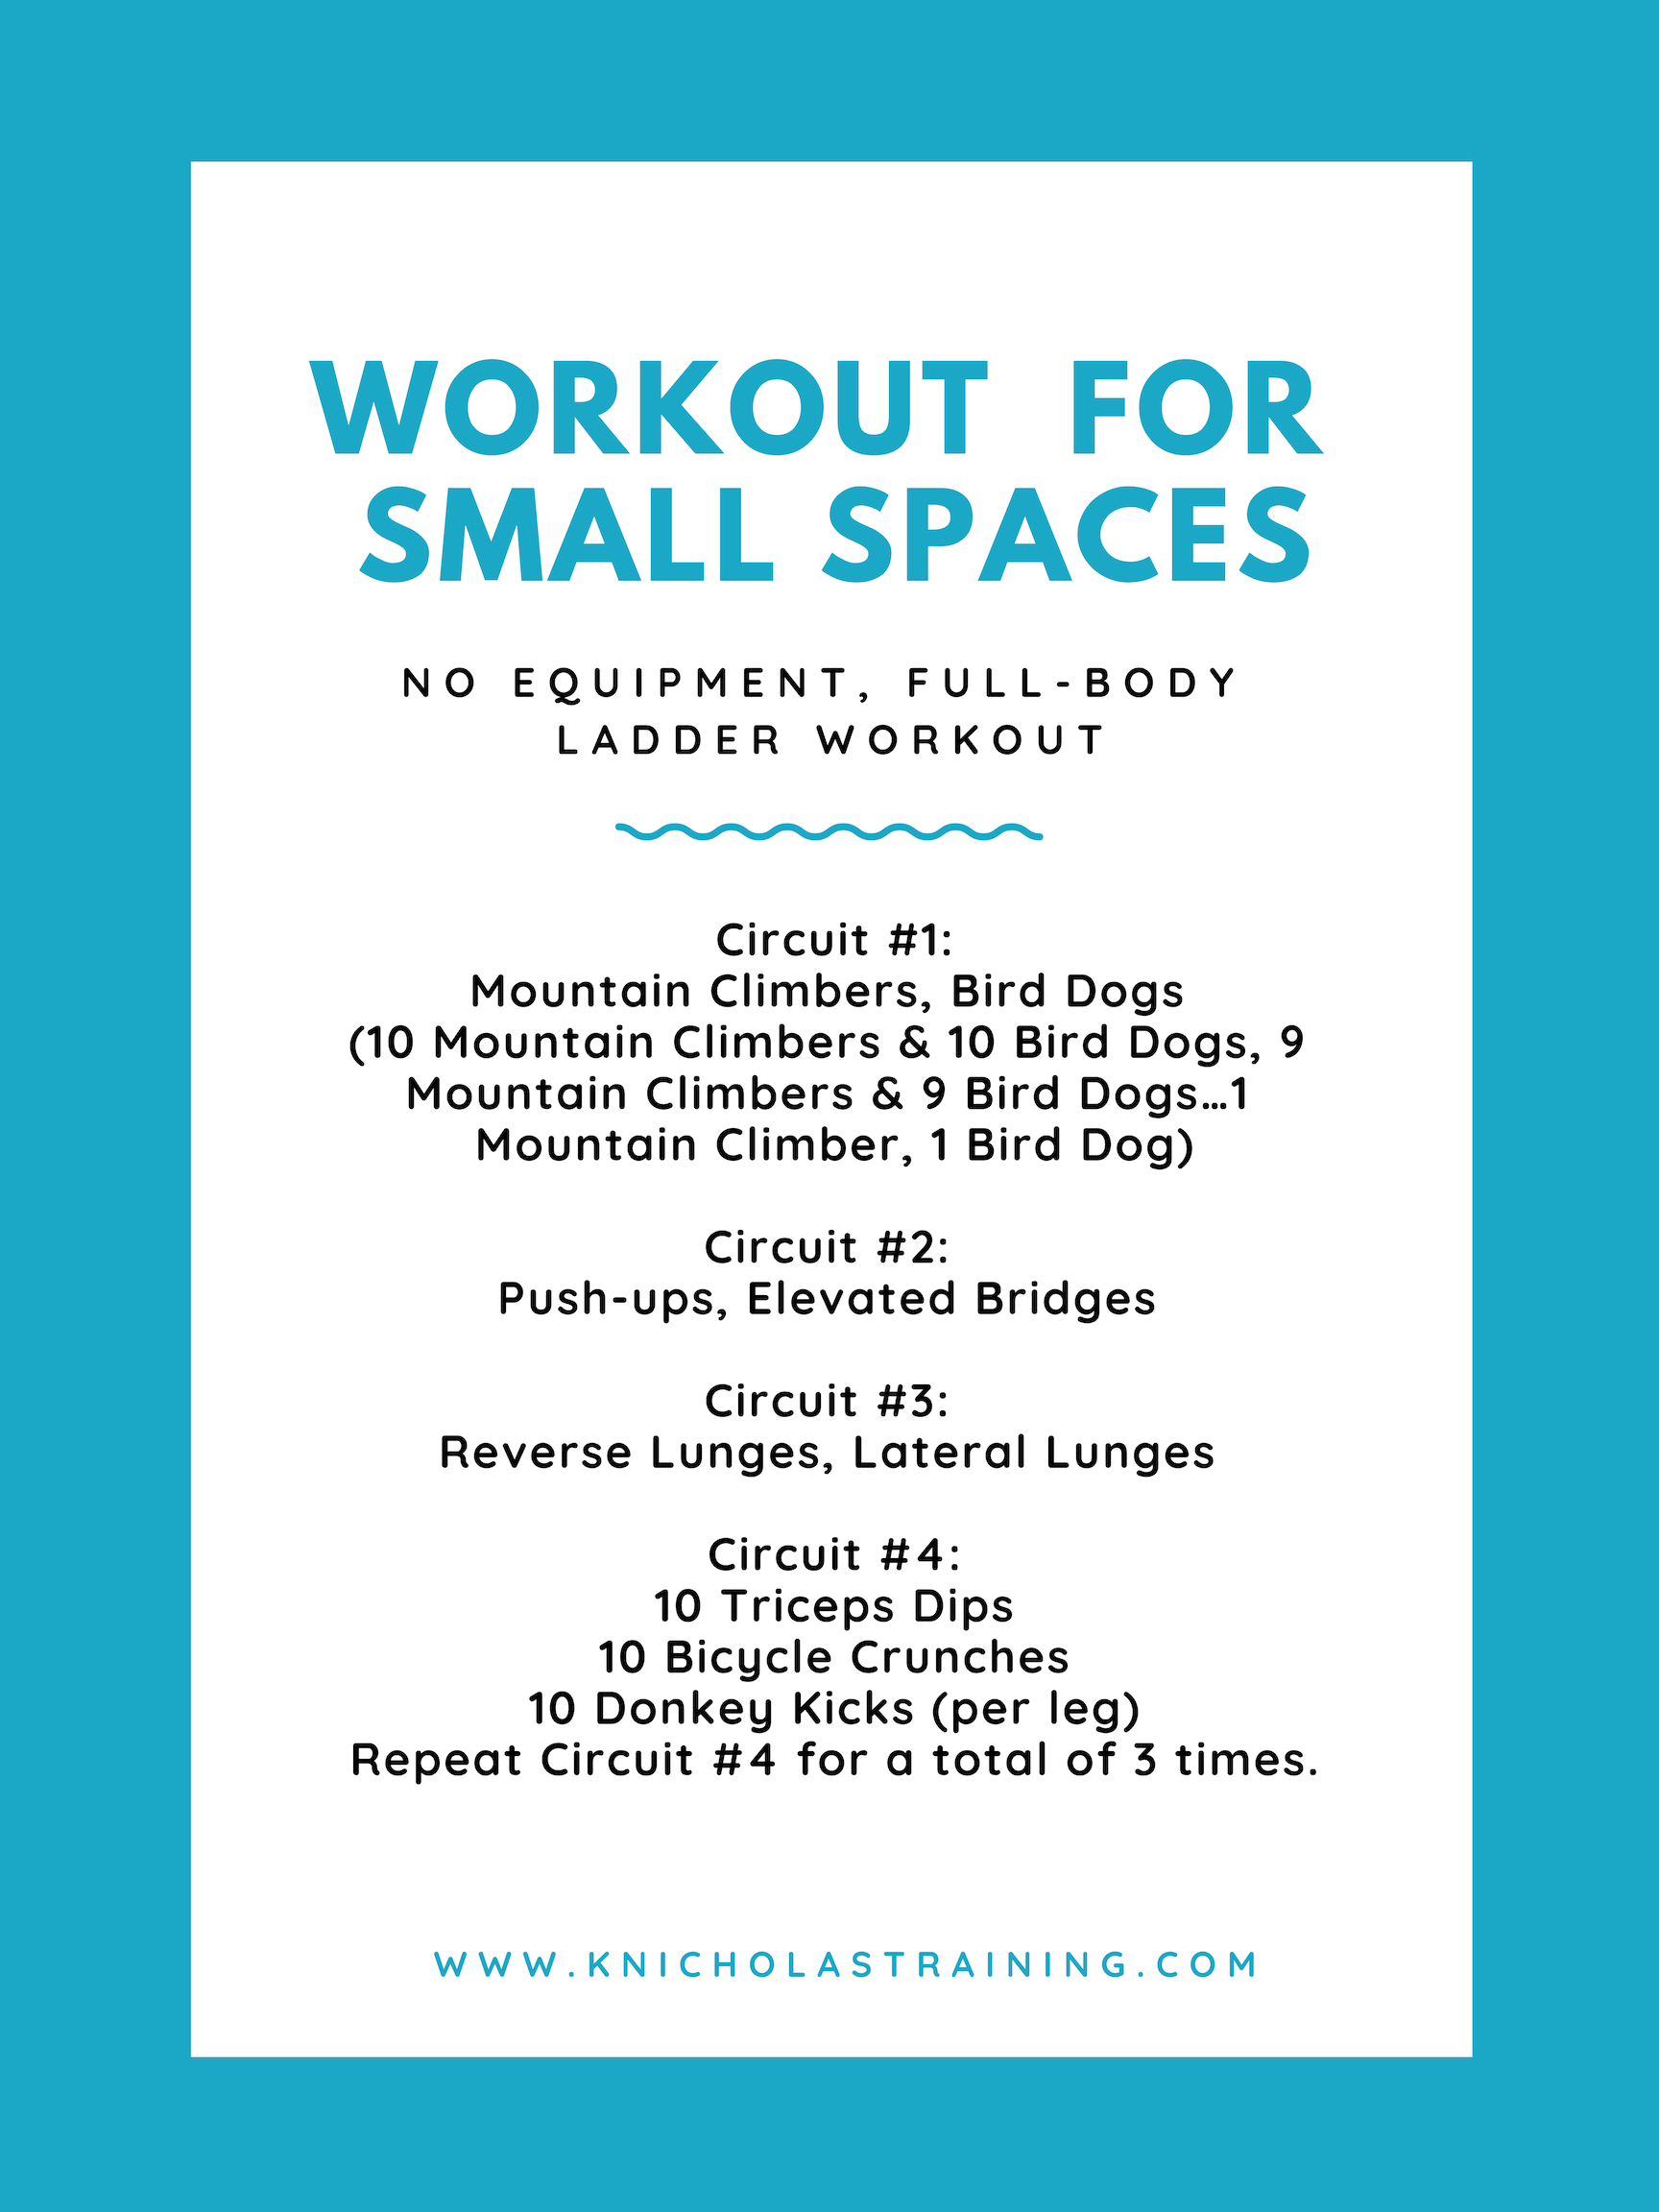 workout for small spaces.png